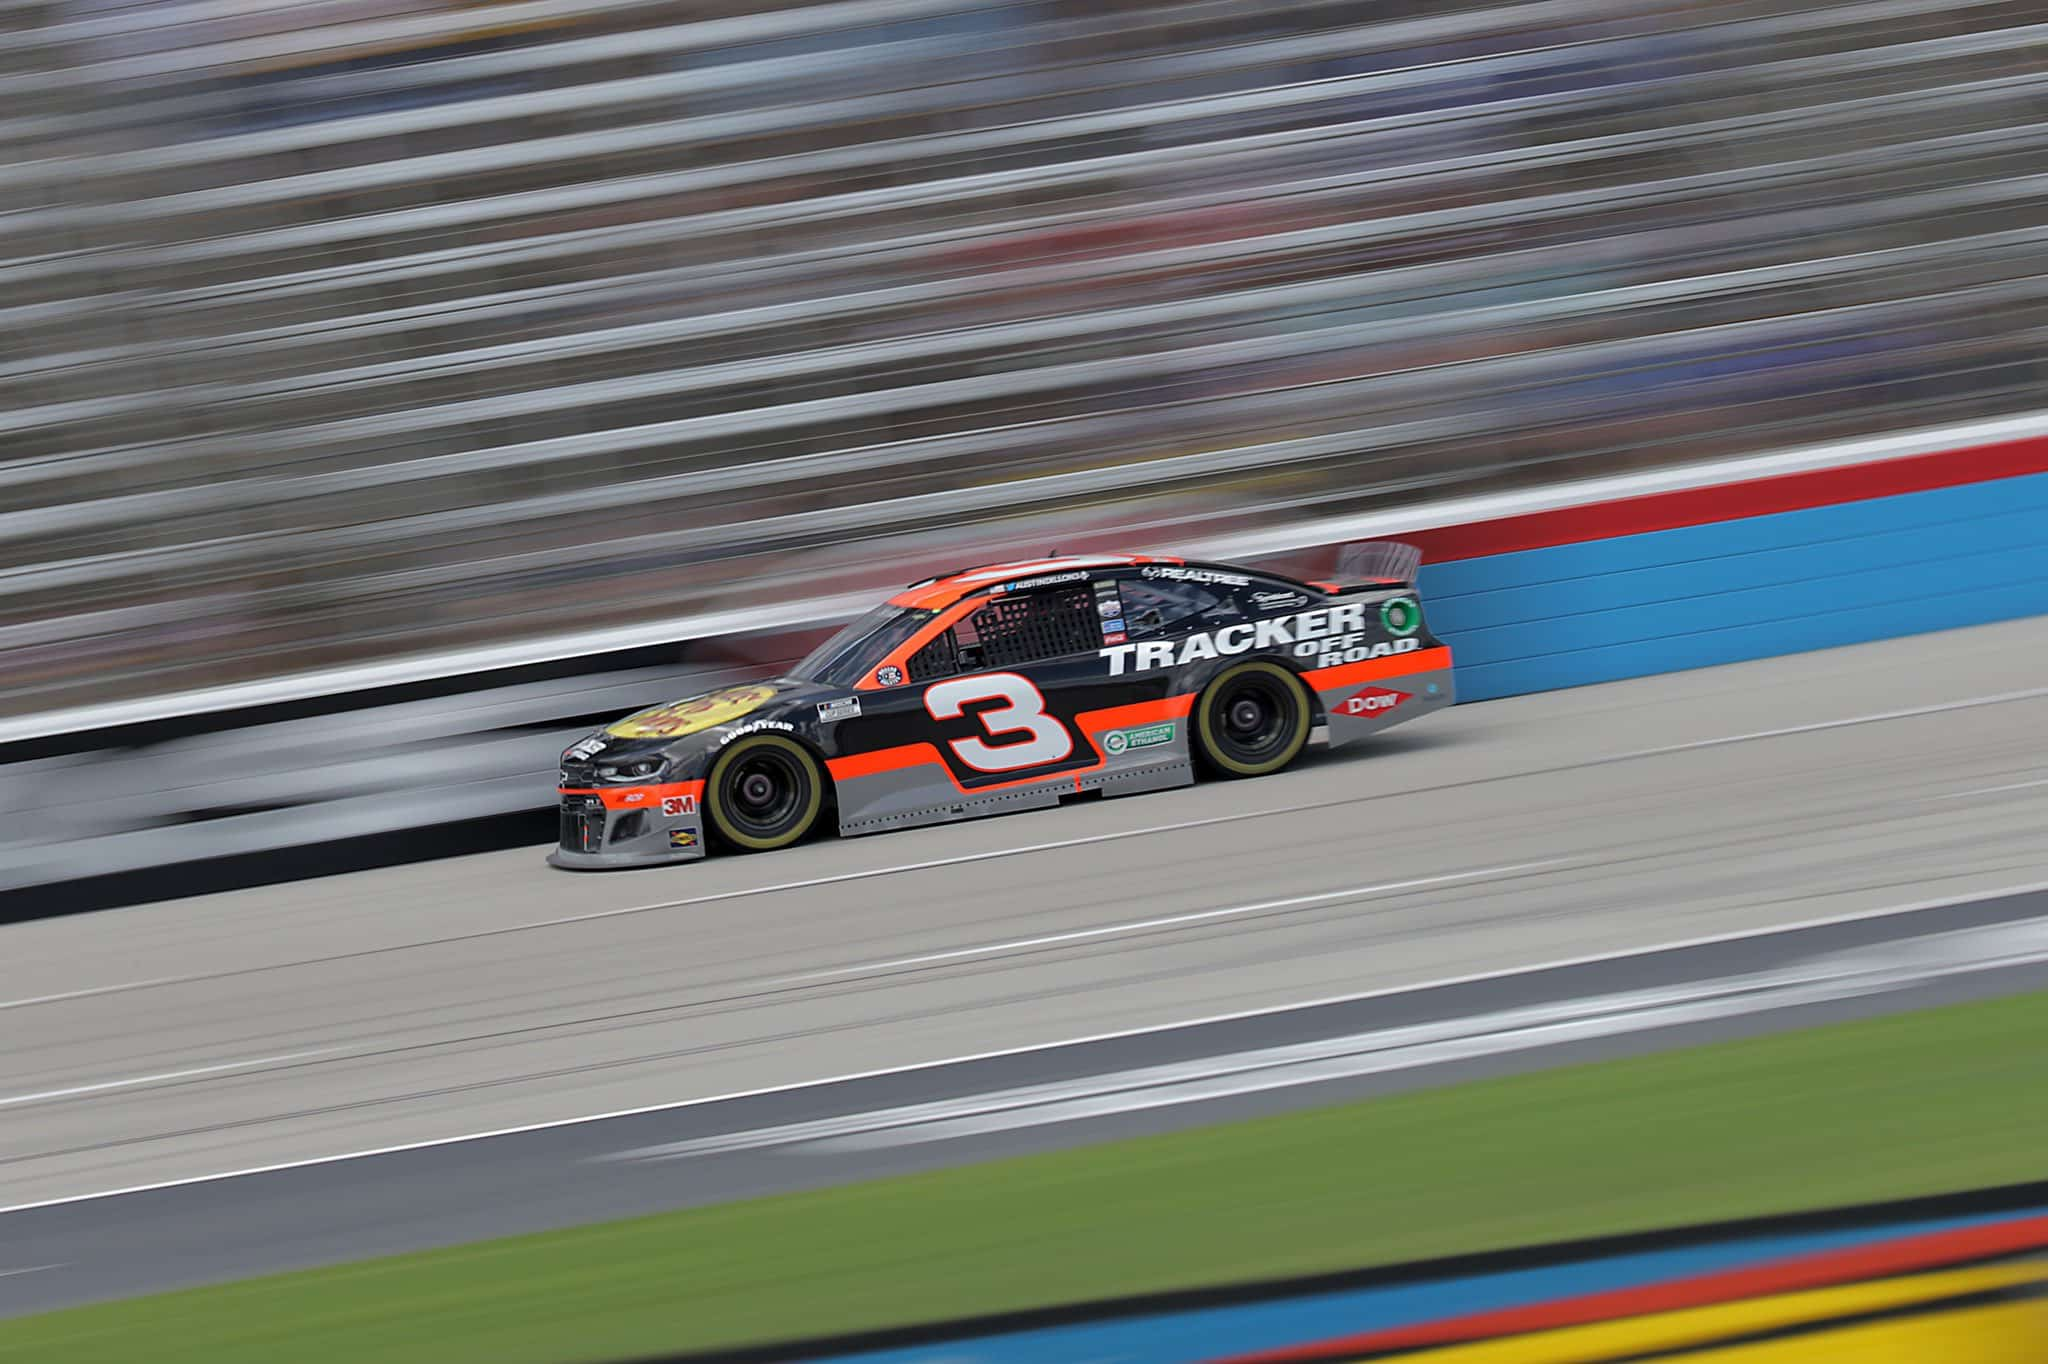 Austin Dillon on his way to his first win of 2020 at Texas